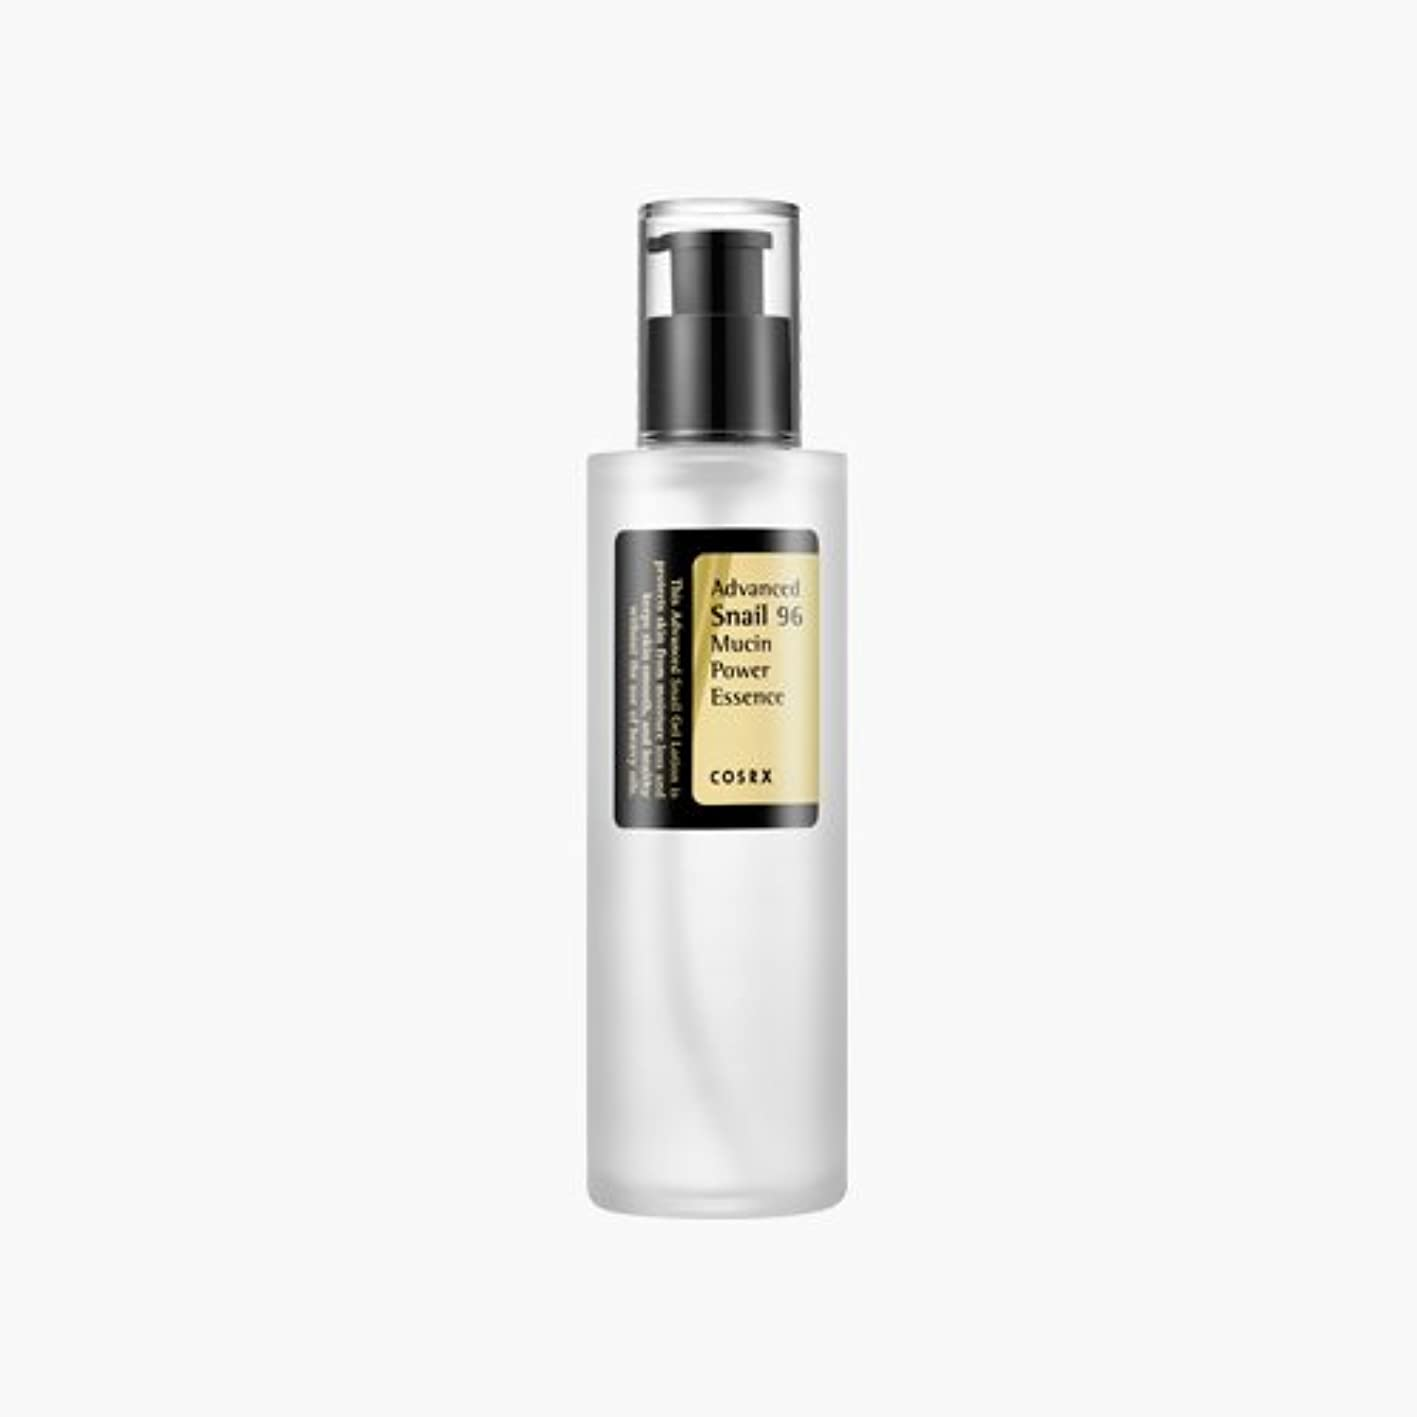 びんチャーター免除する[Cosrx] Advanced Snail 96 Mucin Power Essence 100ml/K-Beauty/Korea Cosmetics